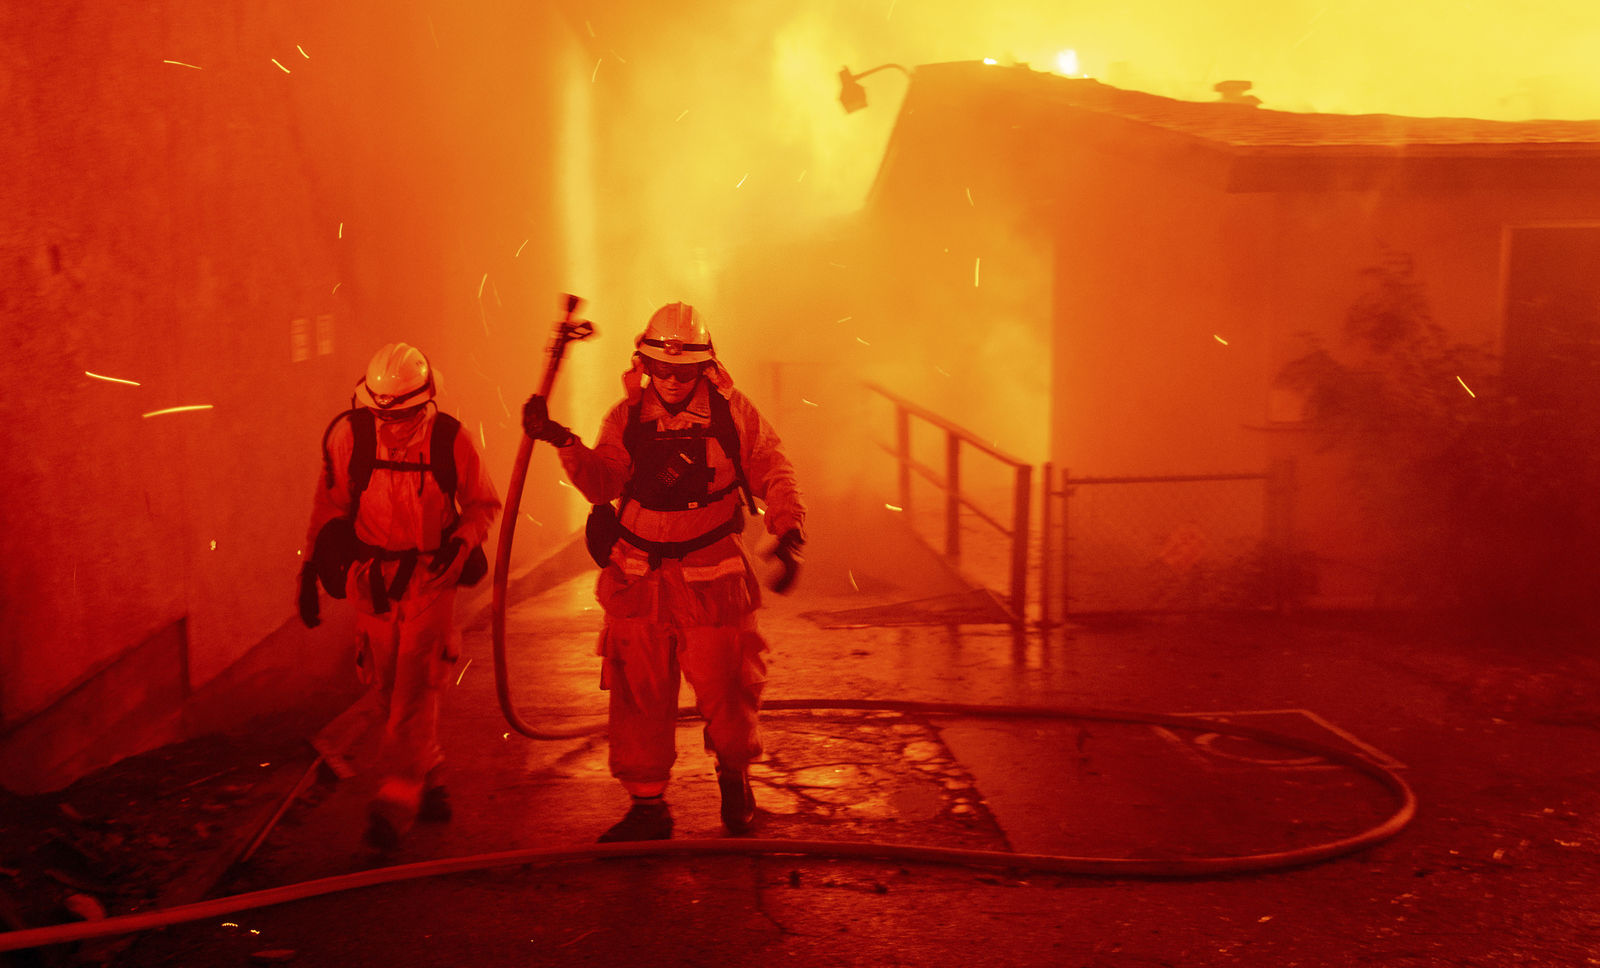 FILE - In this Thursday, Nov. 8, 2018 file photo, firefighters battle the Camp Fire as it tears through Paradise, Calif. (AP Photo/Noah Berger, File)